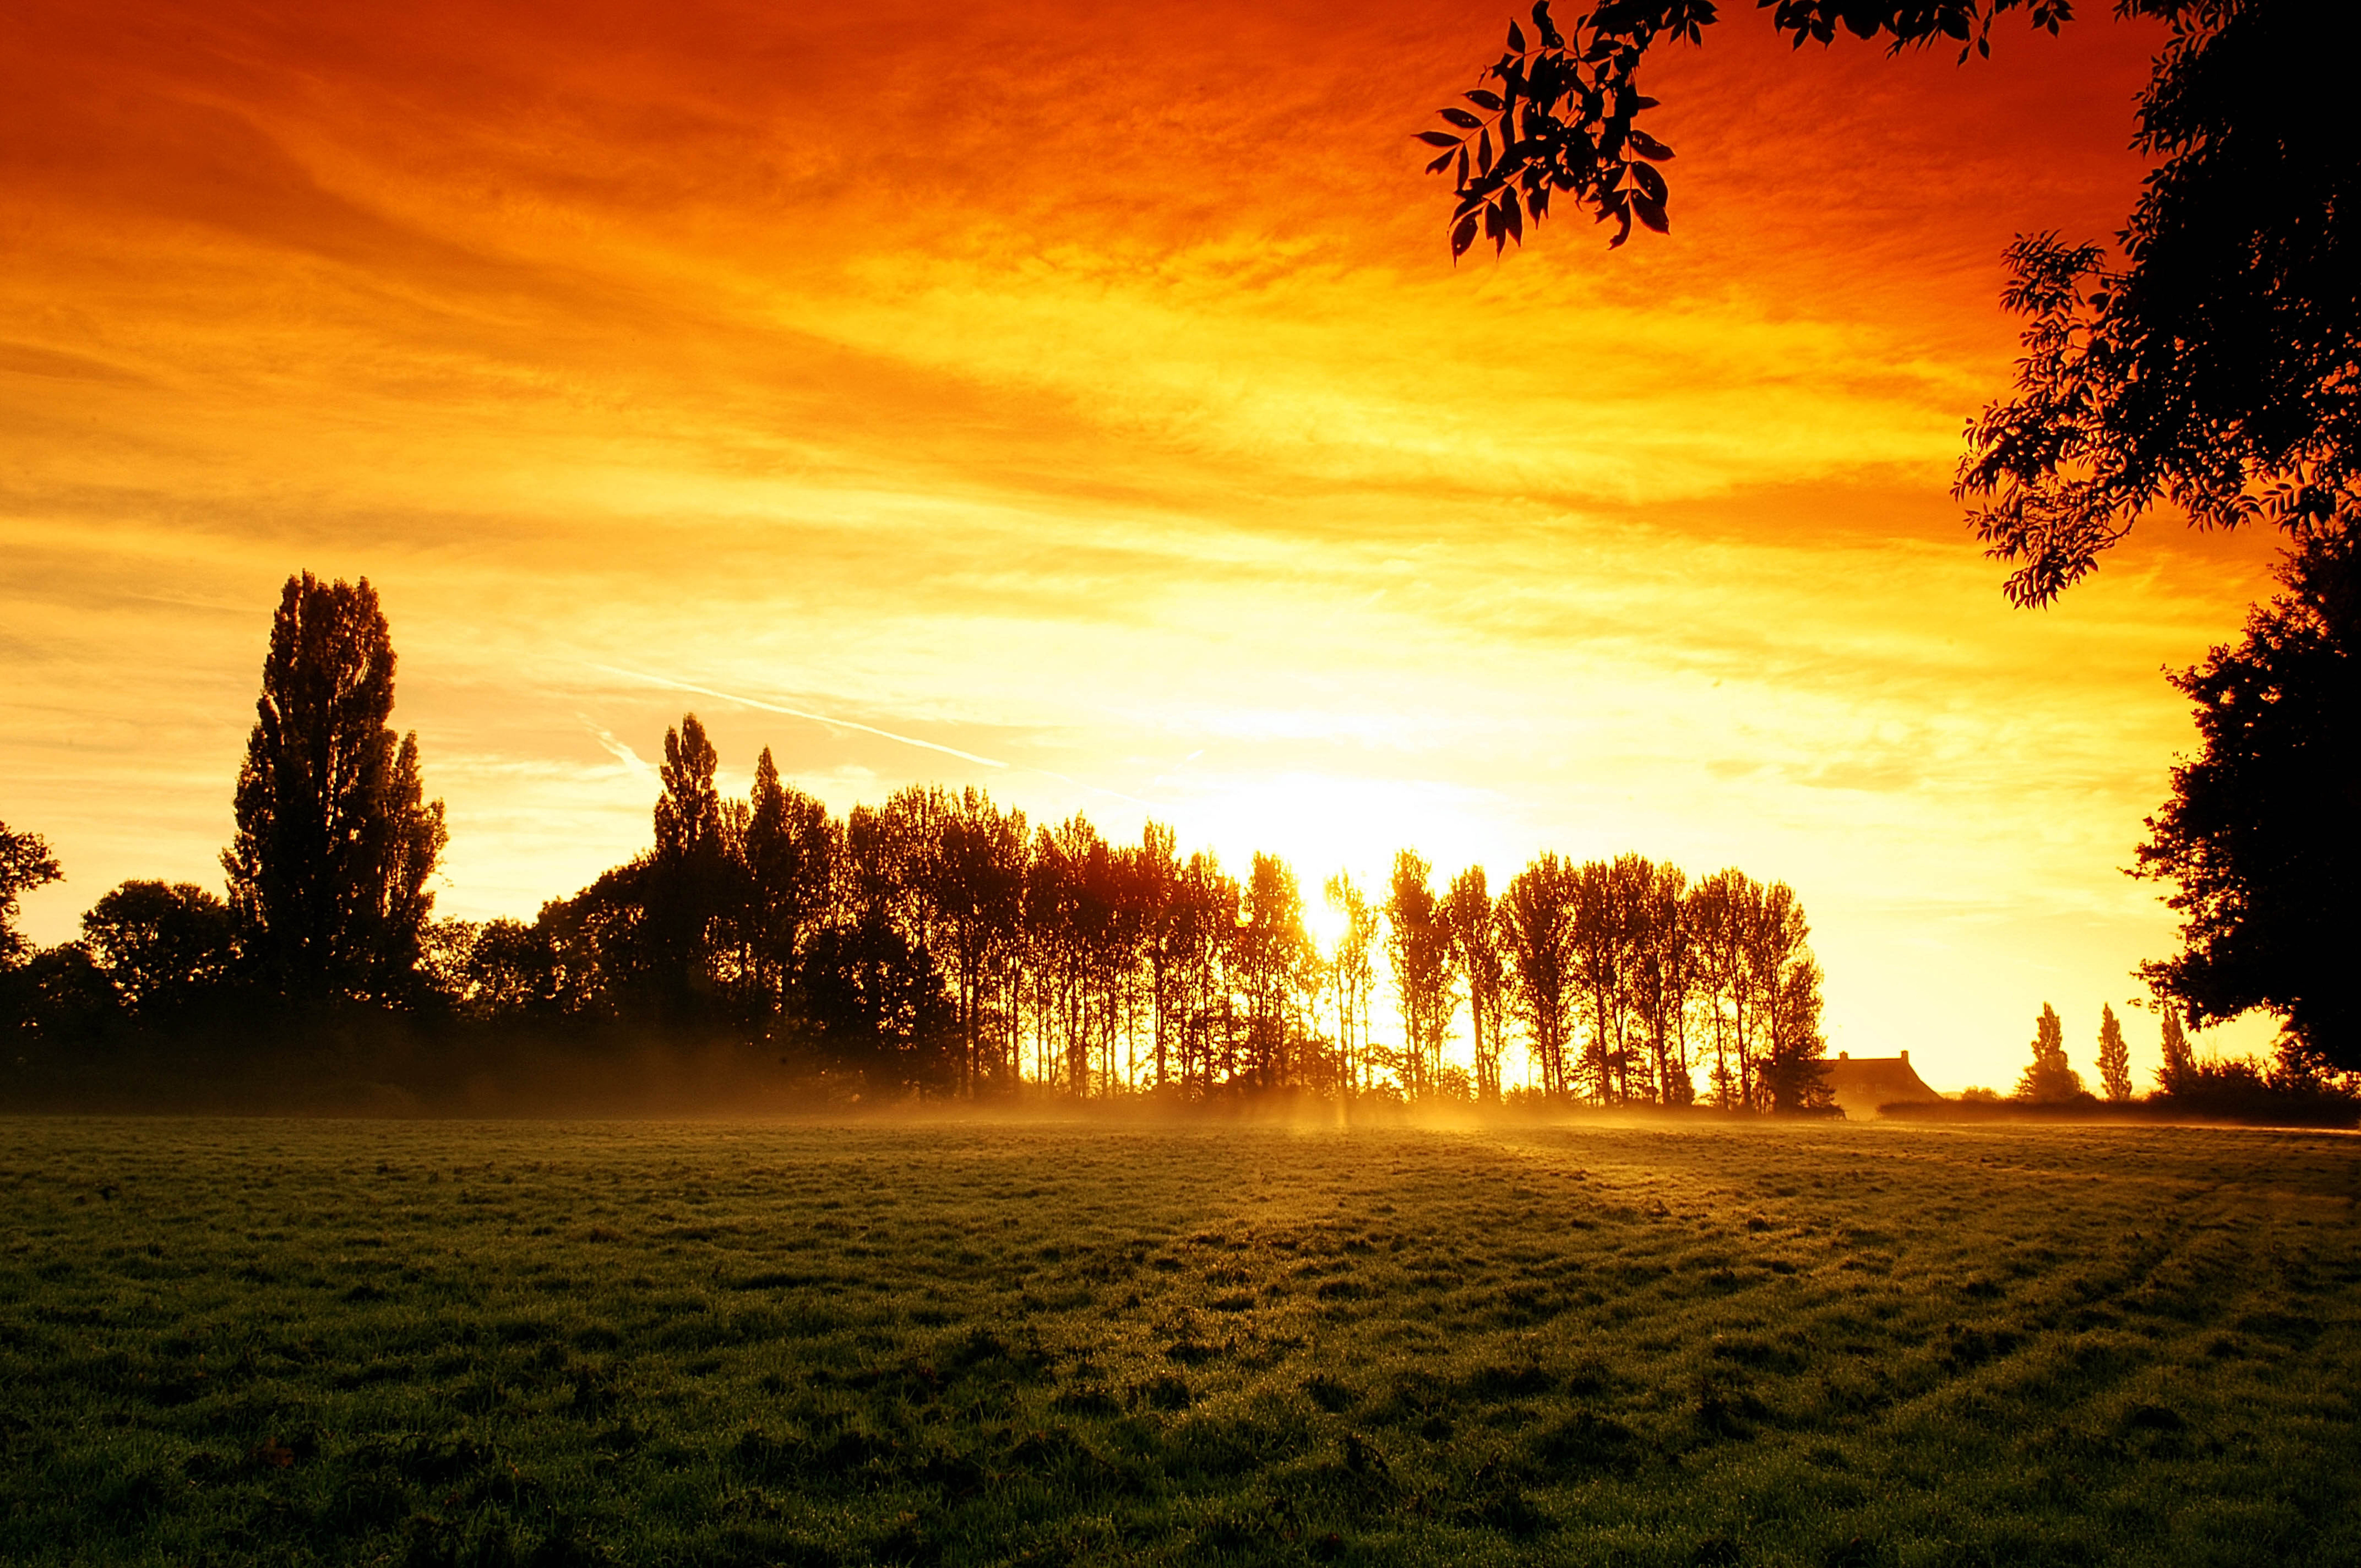 sunrise pictures free - 500×338